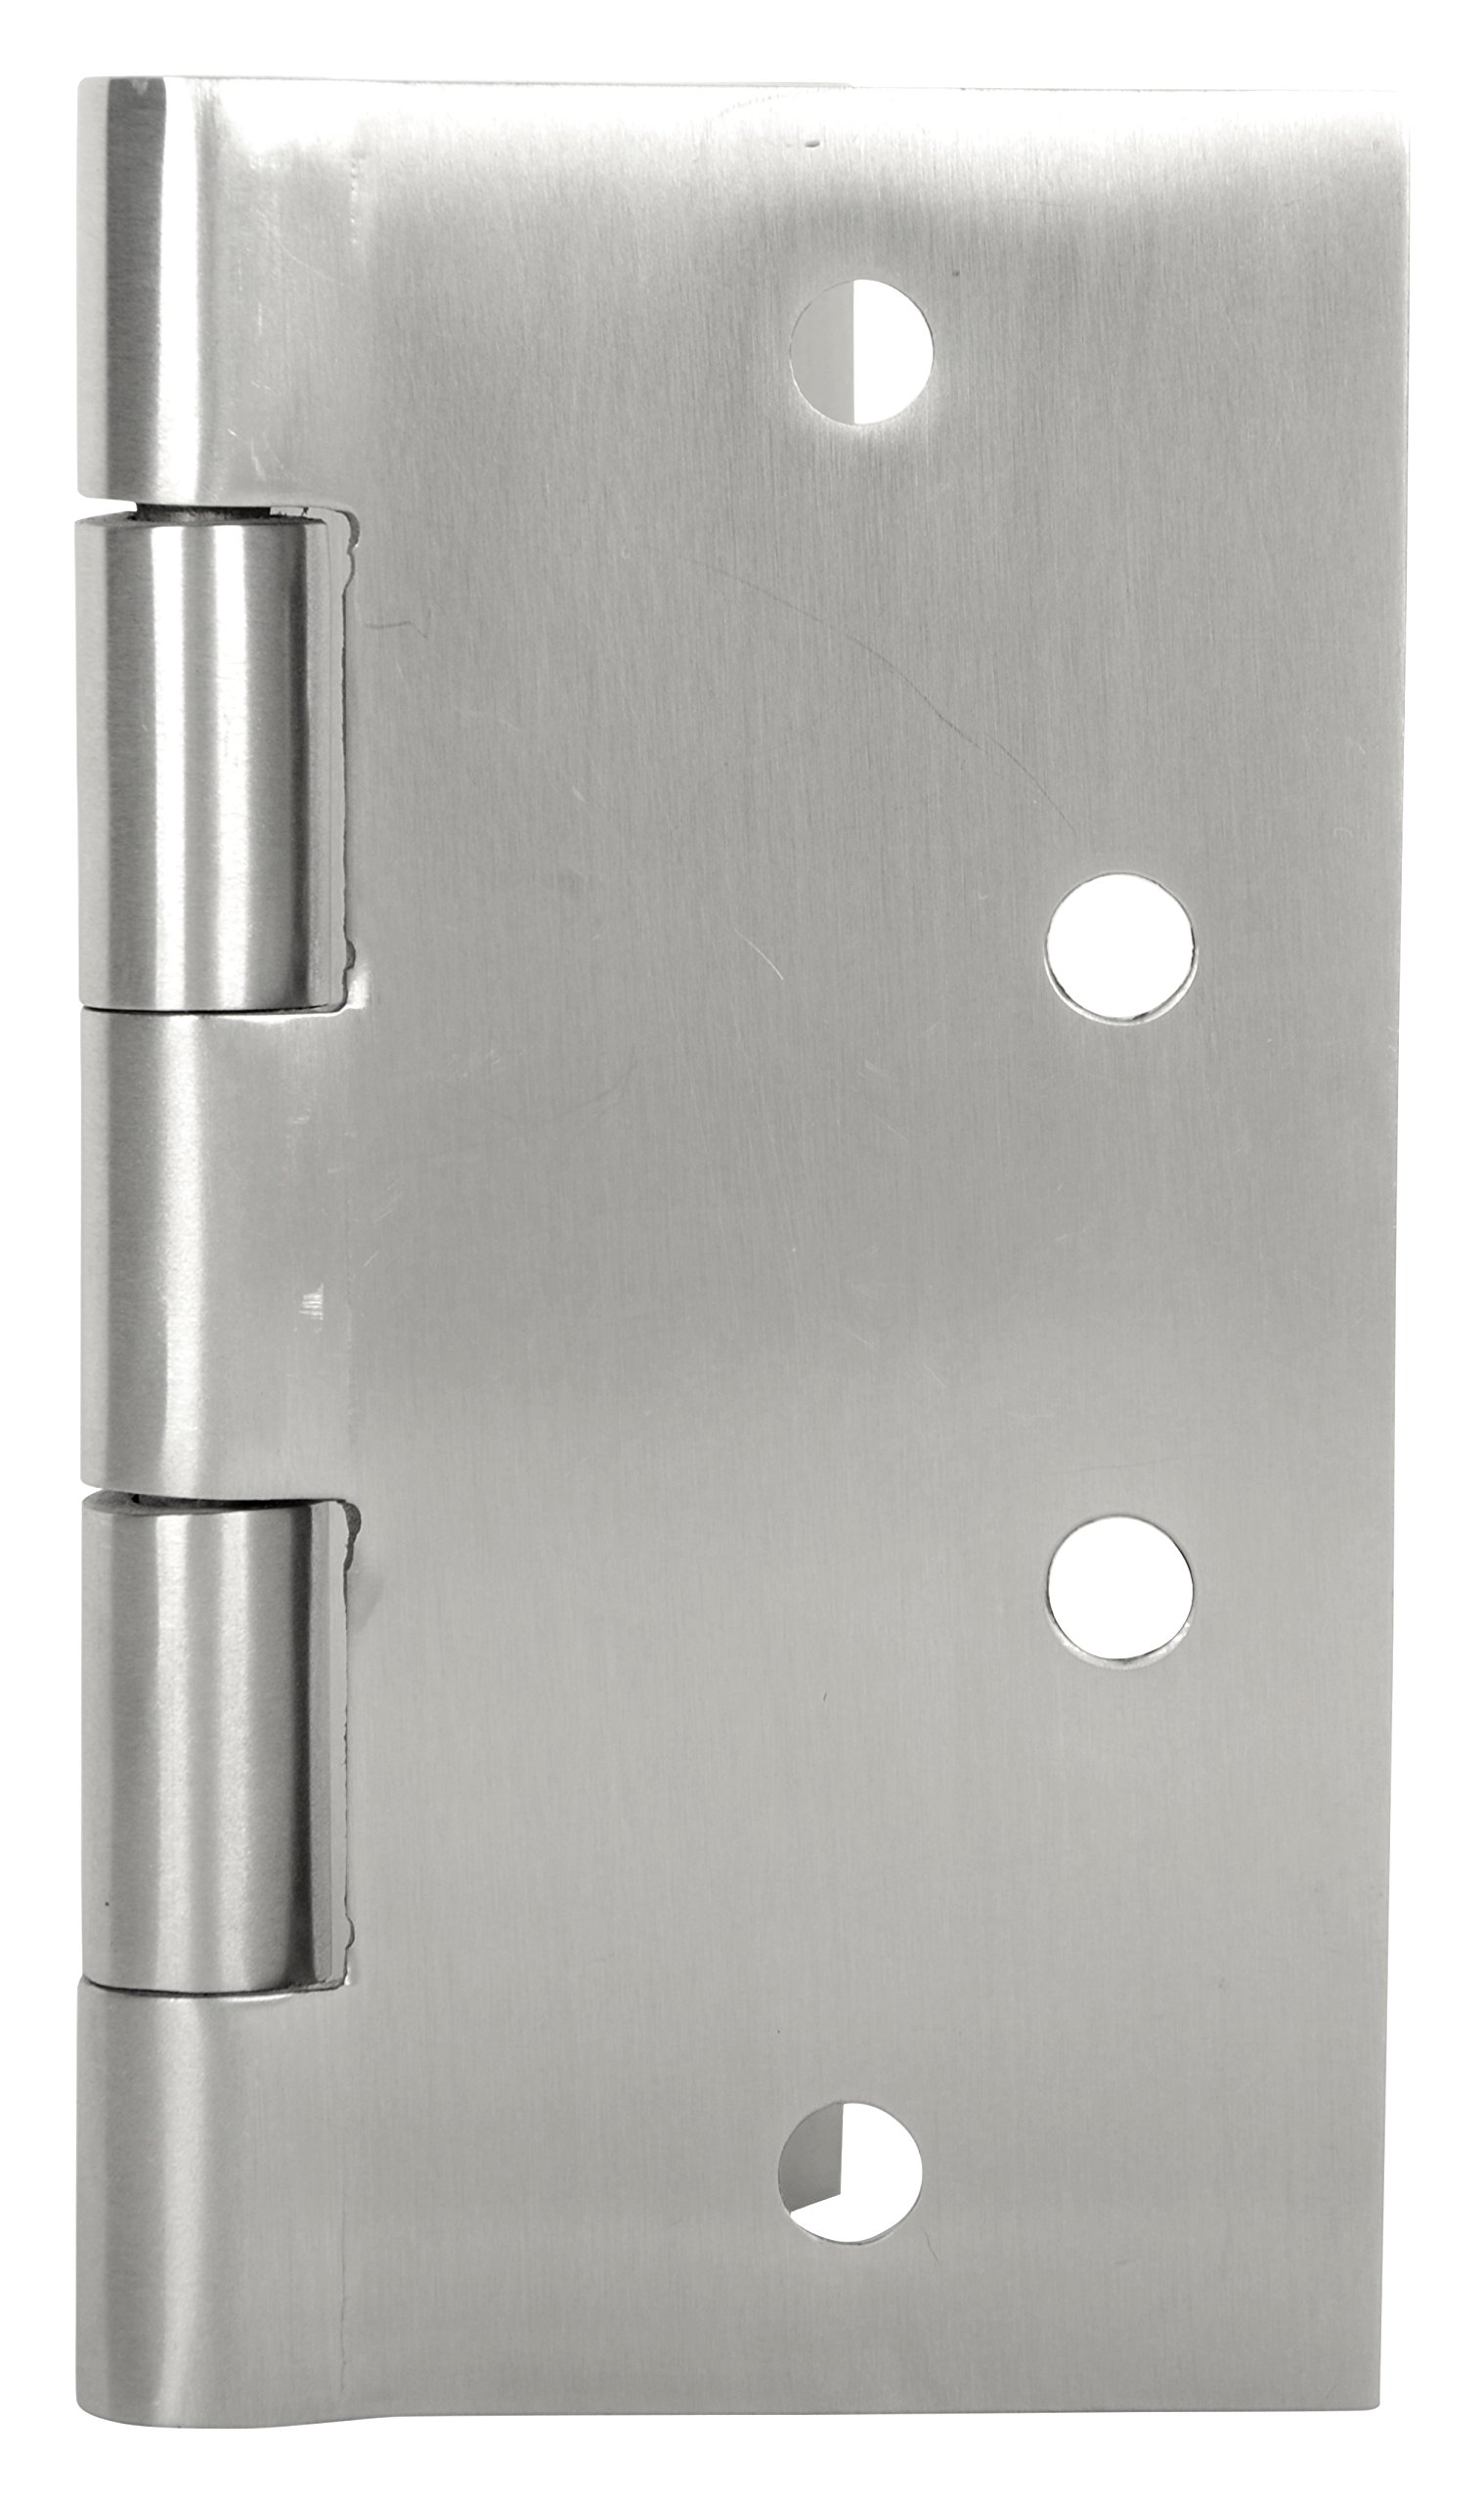 4 INCH x 4 INCH DOOR HINGES 3 PCS Stainless Steel Hinge SATIN FINISH 32D COMMERCIAL DOORS WITH SECURITY PIN NRP REVERSIBLE TECHNIC 24 SELF DRILLING SCREWS L key Removable Tool